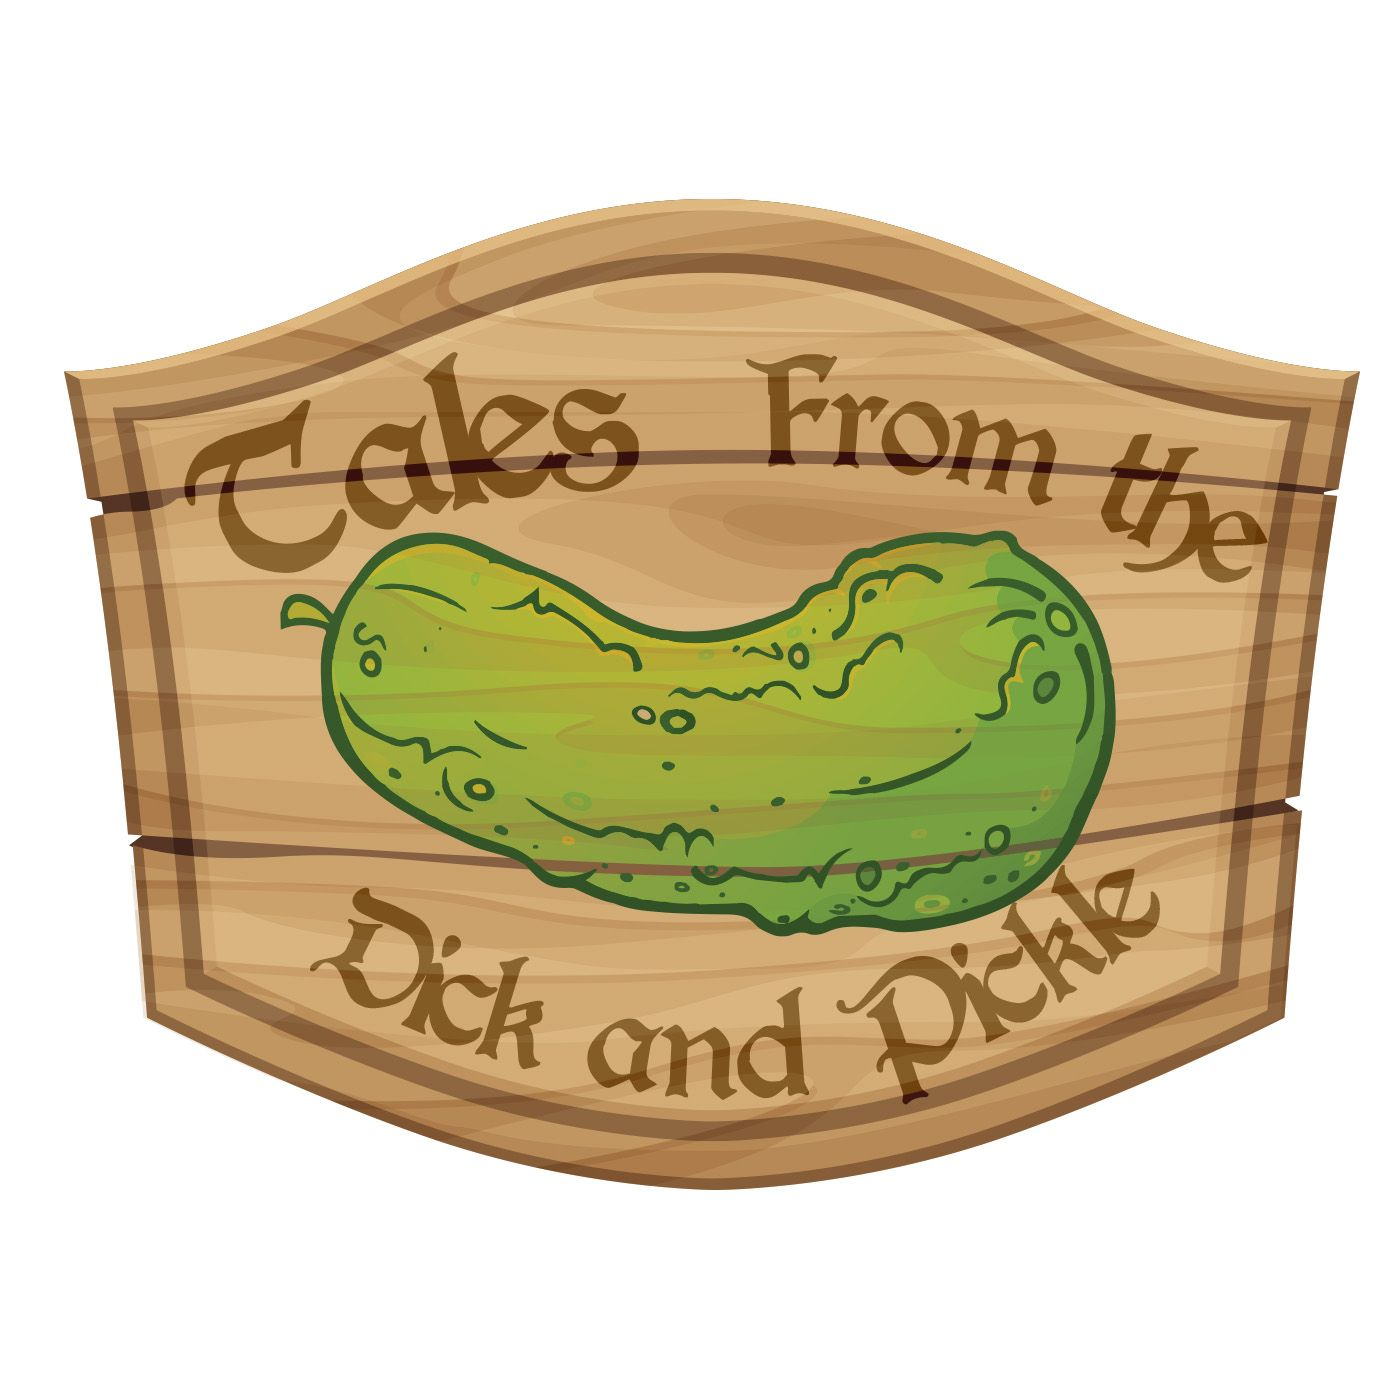 Tails From the Dick and Pickle